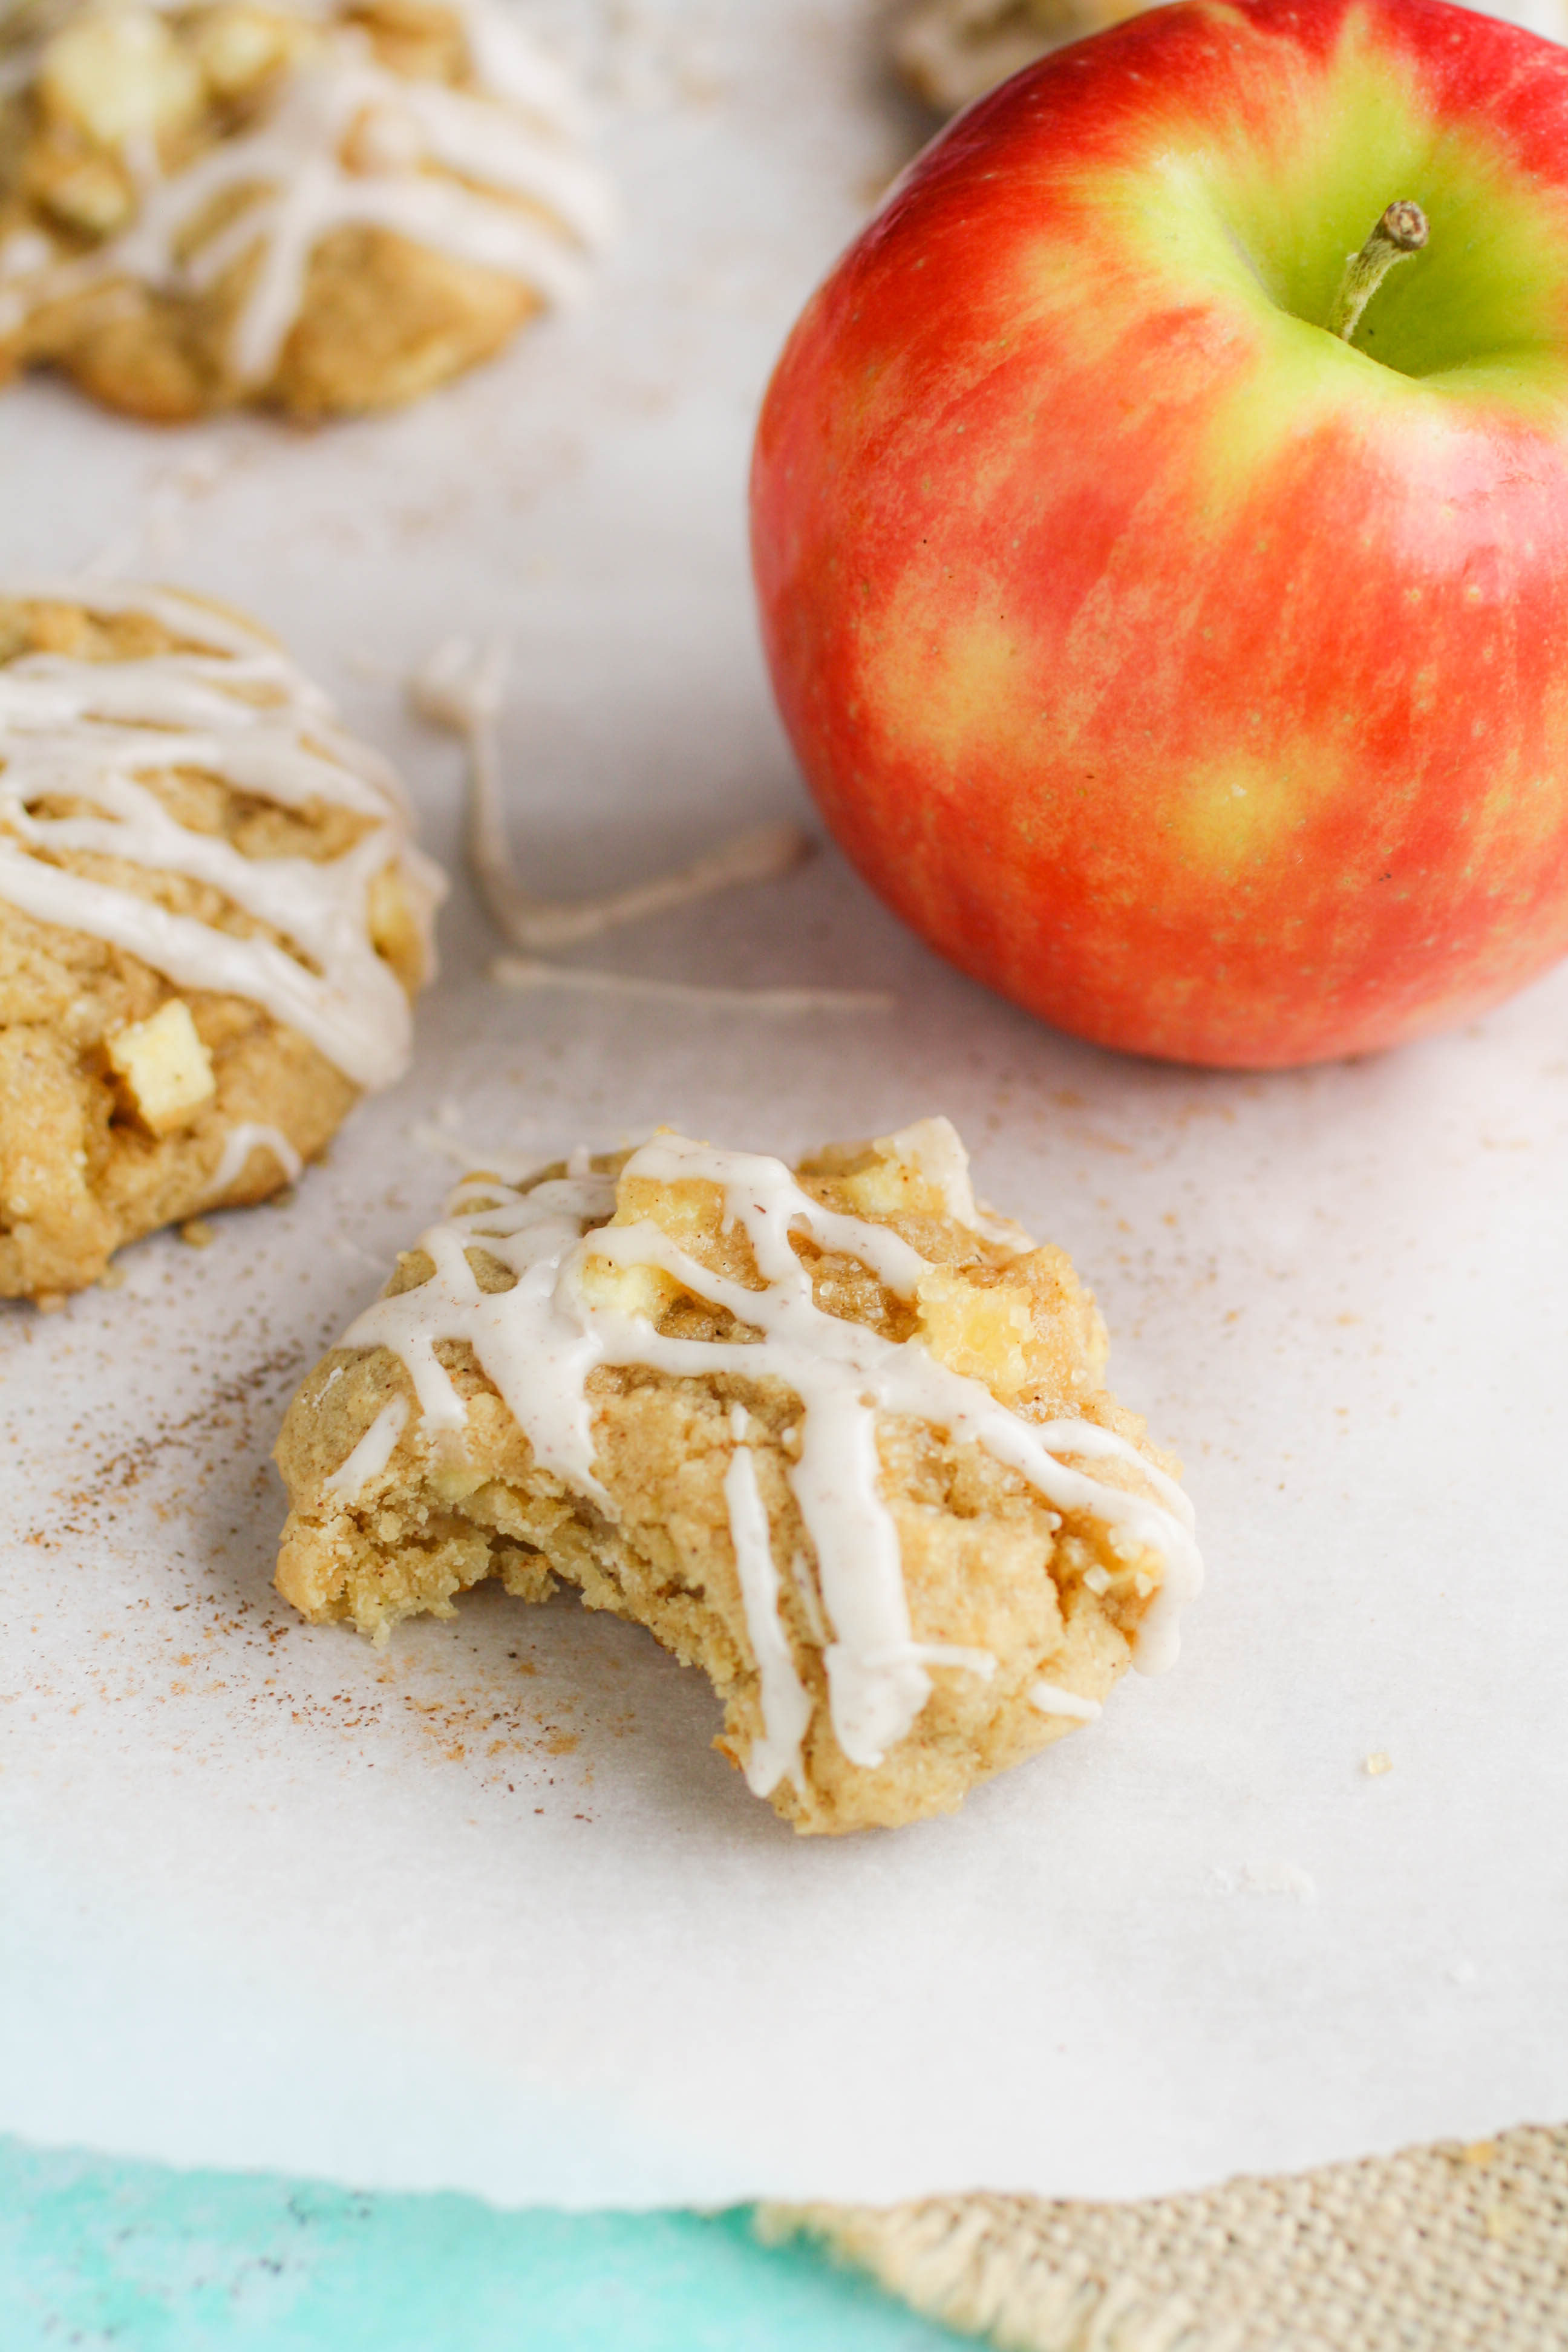 Apple Pie Cookies with Cinnamon Glaze will be your new favorite cookie! Apple Pie Cookies with Cinnamon Glaze make a fun and festive dessert!